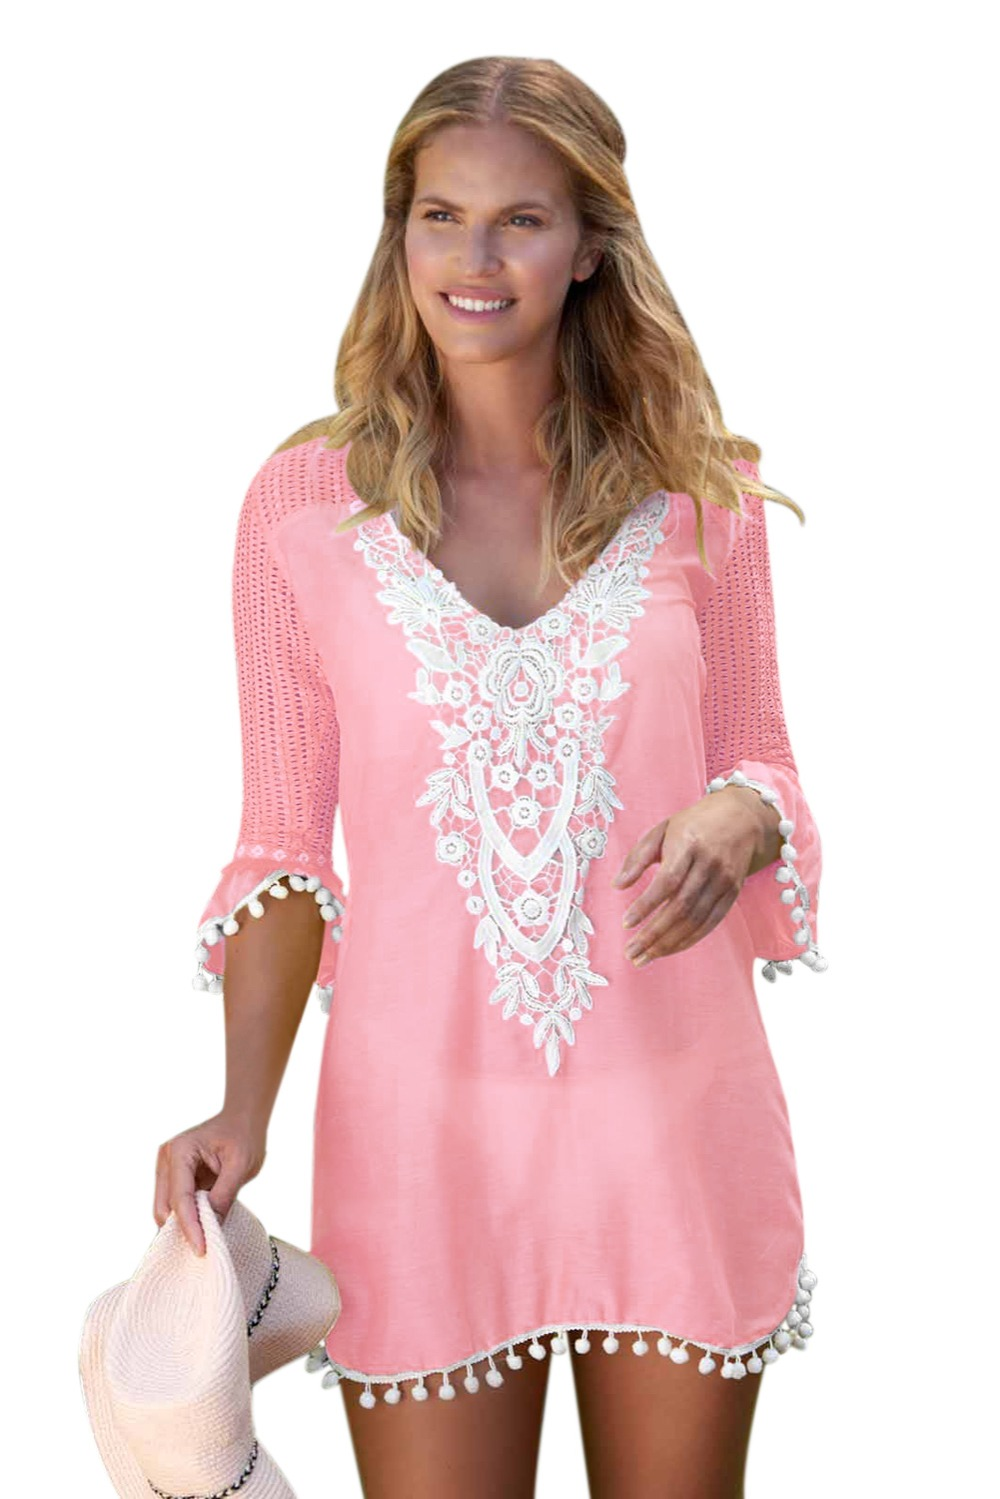 fbd5b644196d5 US $12.74 20% OFF|Zmvkgsoa Kaftan Beach Dress Women Summer Wear Crochet  Mini Dresses Clothing Tunic Beachwear For Girls Saida De Praia V42231-in ...